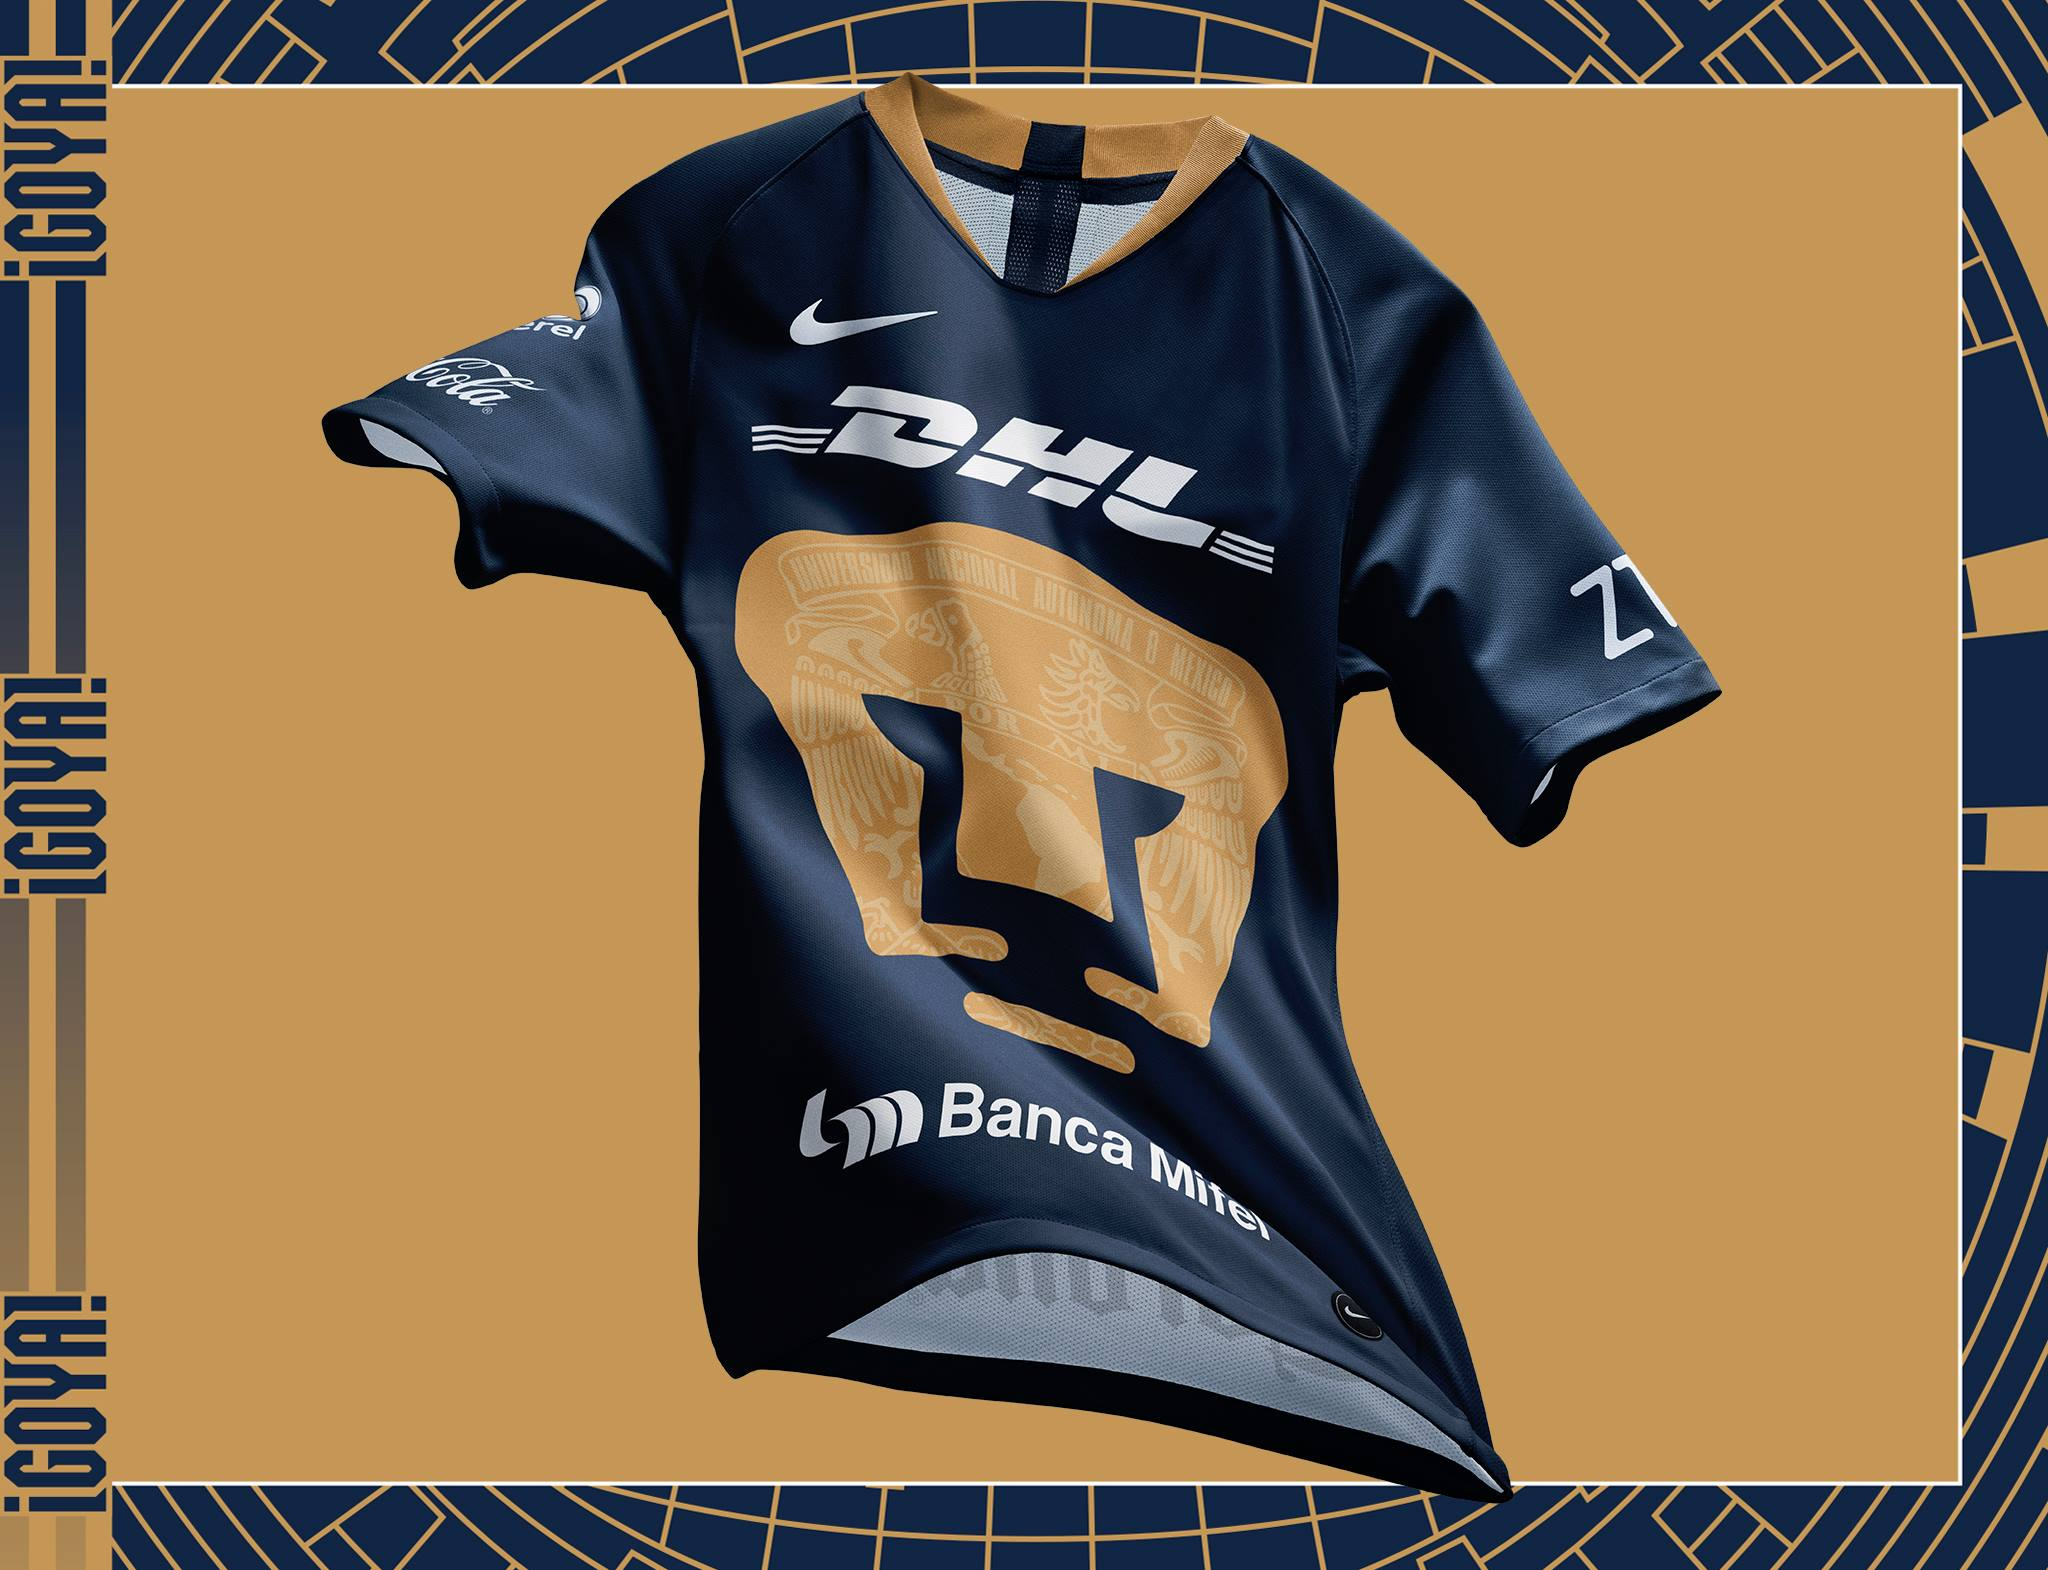 Pumas unam nike third kit kits football shirt blog jpg 2048x1570 Pumas  futbol club kit 151a82723